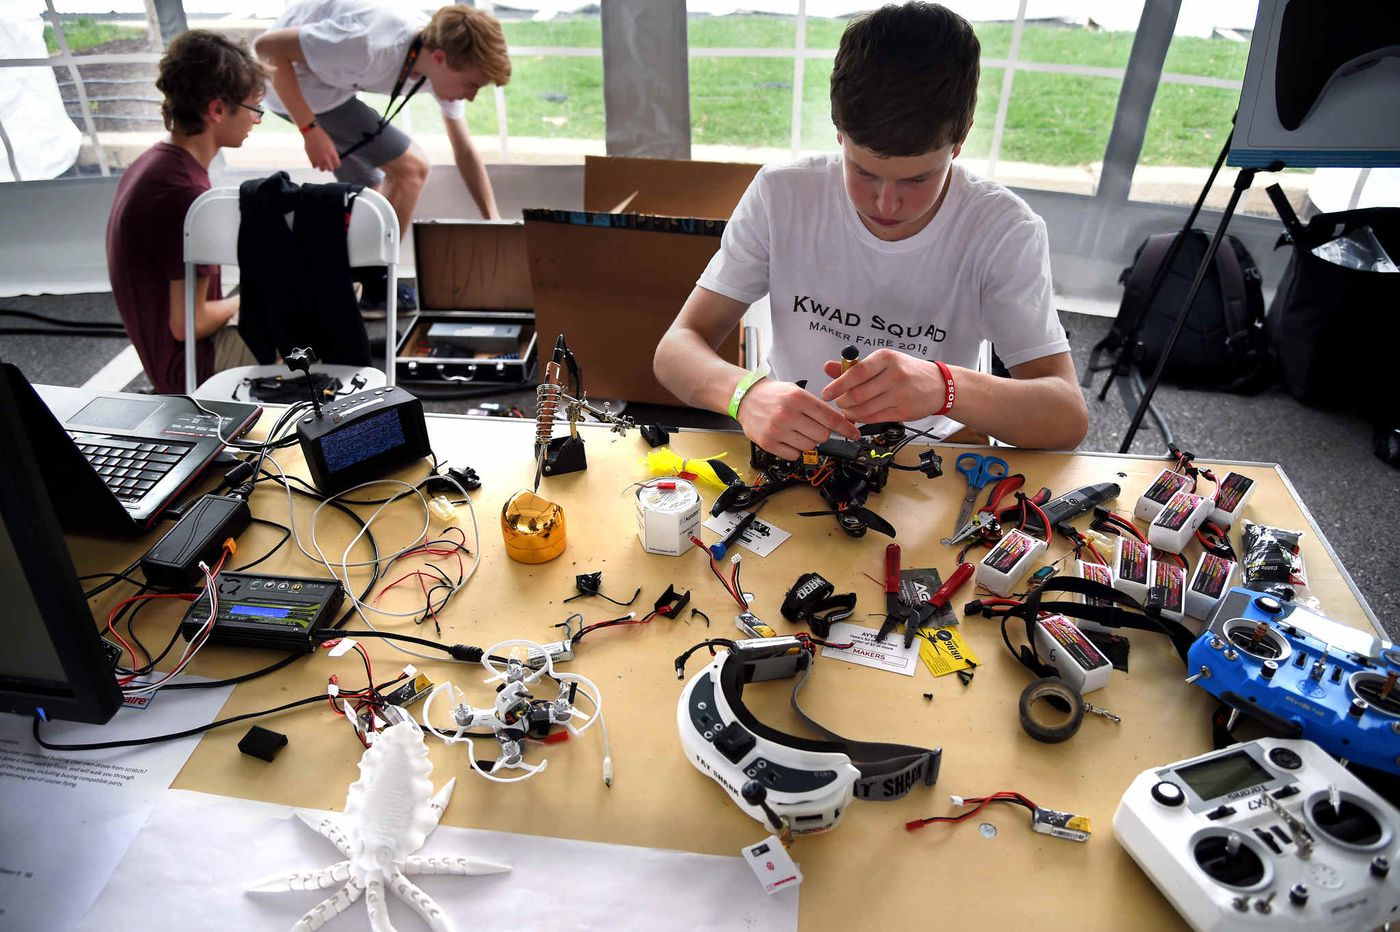 States like Pa. need better policy to encourage drone innovation   Opinion